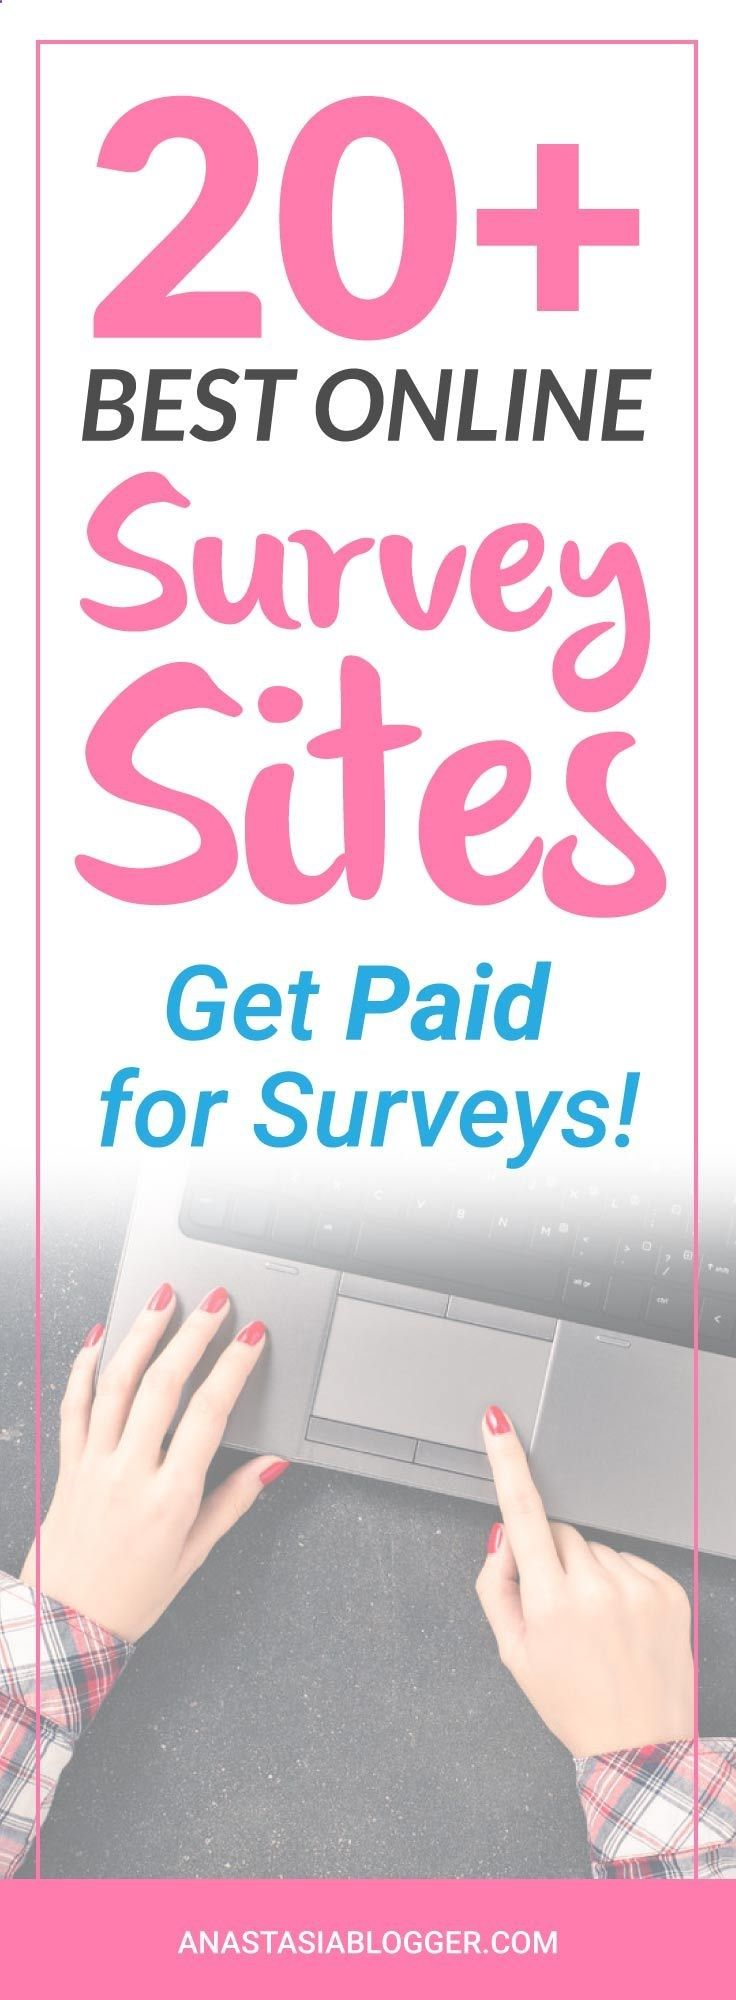 fill out surveys and get paid online income website online surveys uk paid mahadine 945